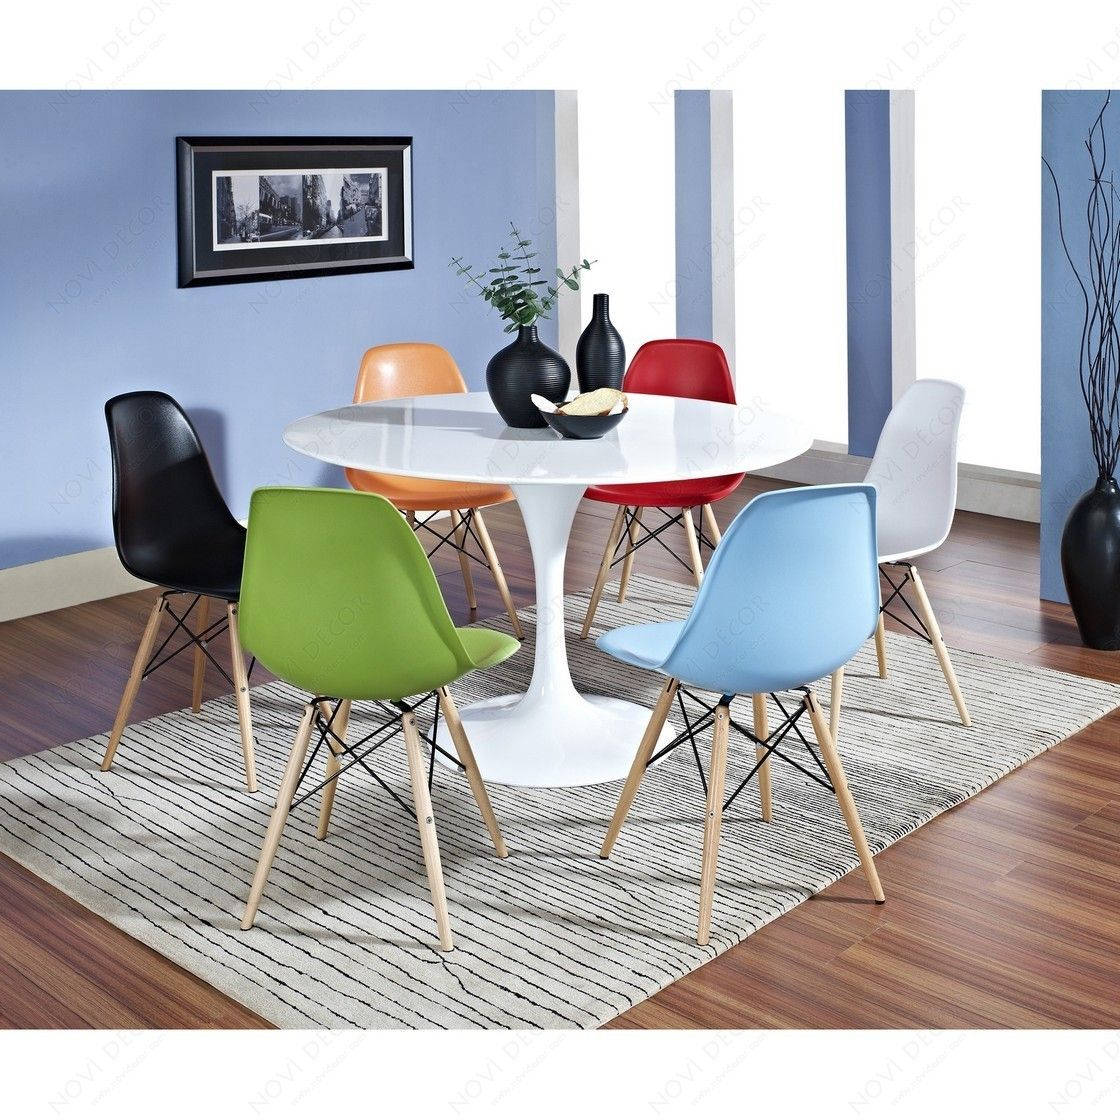 tulip dining room chairs aeron chair white eero saarinen 48 quot table and charles ray eames